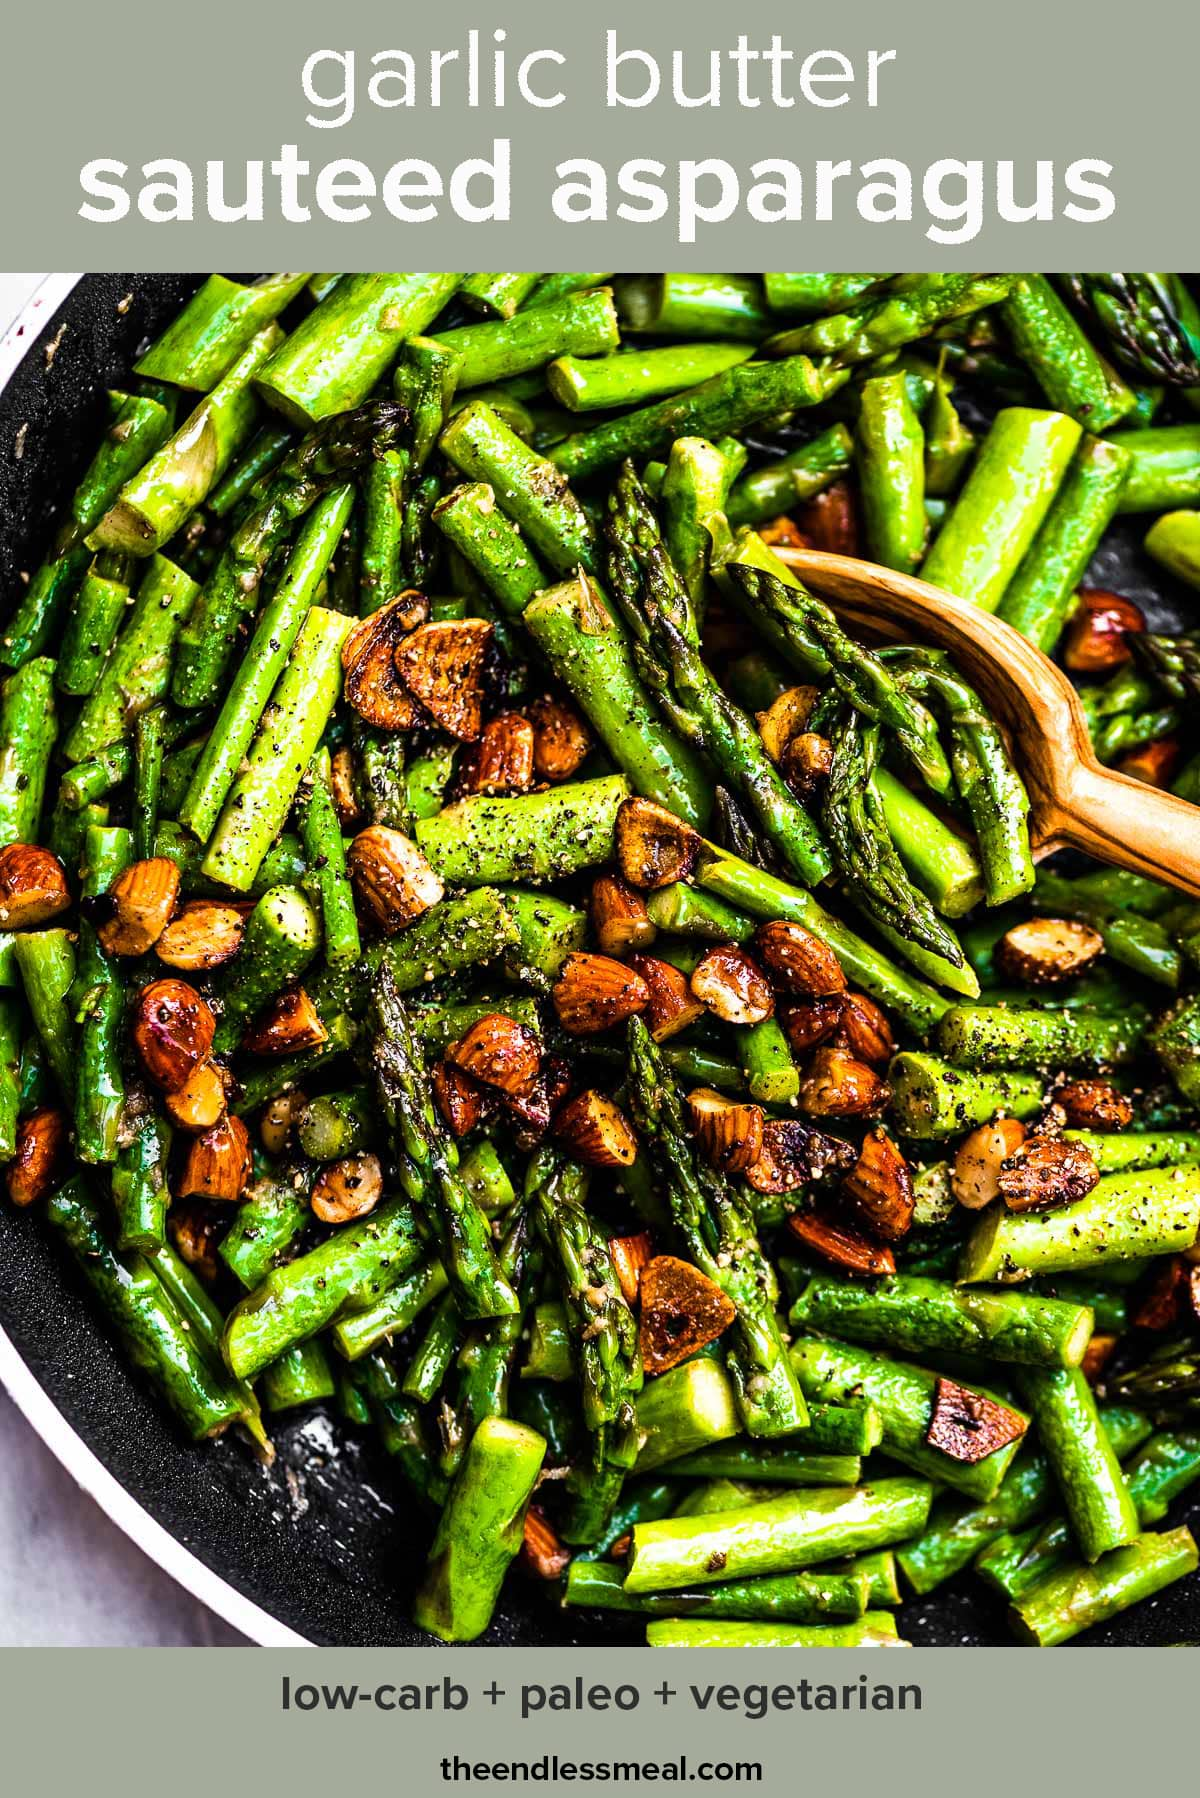 Garlic butter asparagus in a black pan with the recipe title on top of the picture.